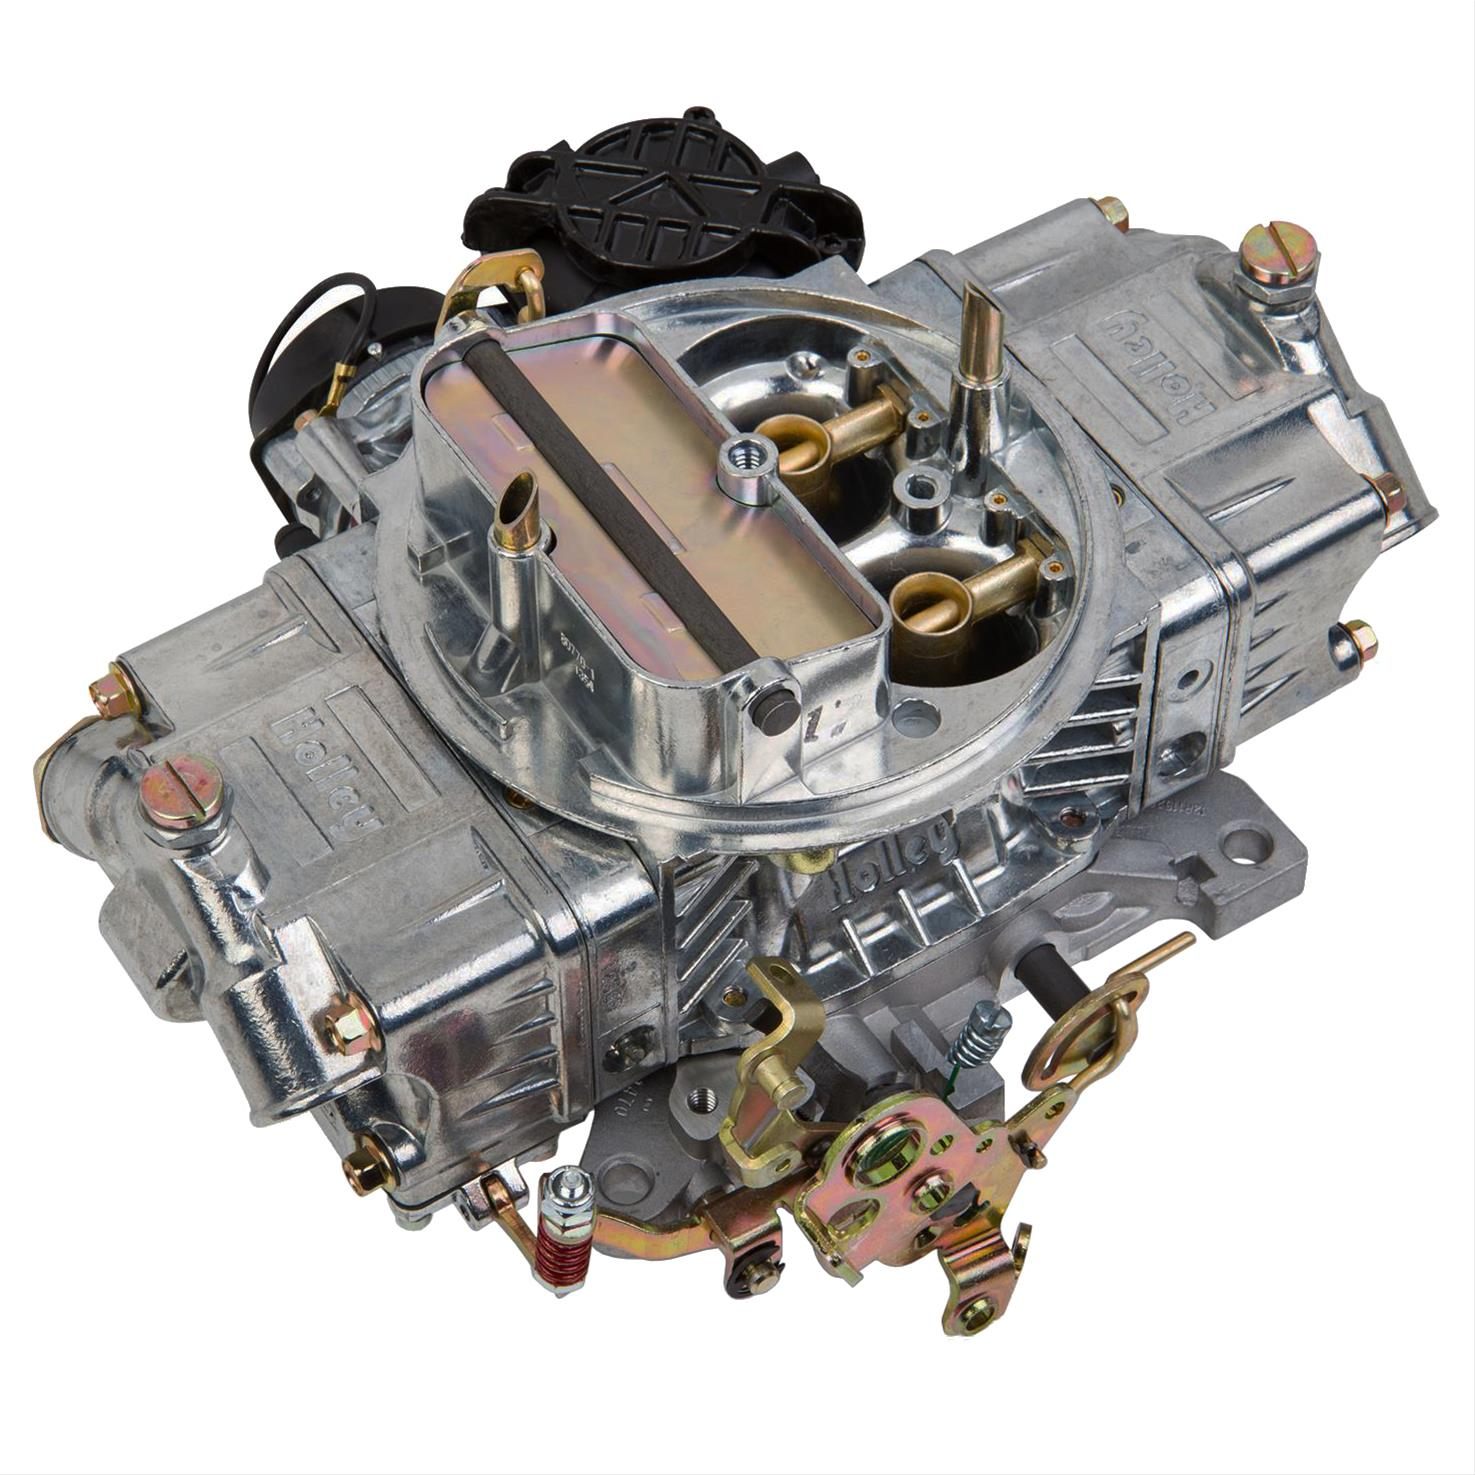 hight resolution of holley street avenger carburetors 0 80770 free shipping on orders over 99 at summit racing